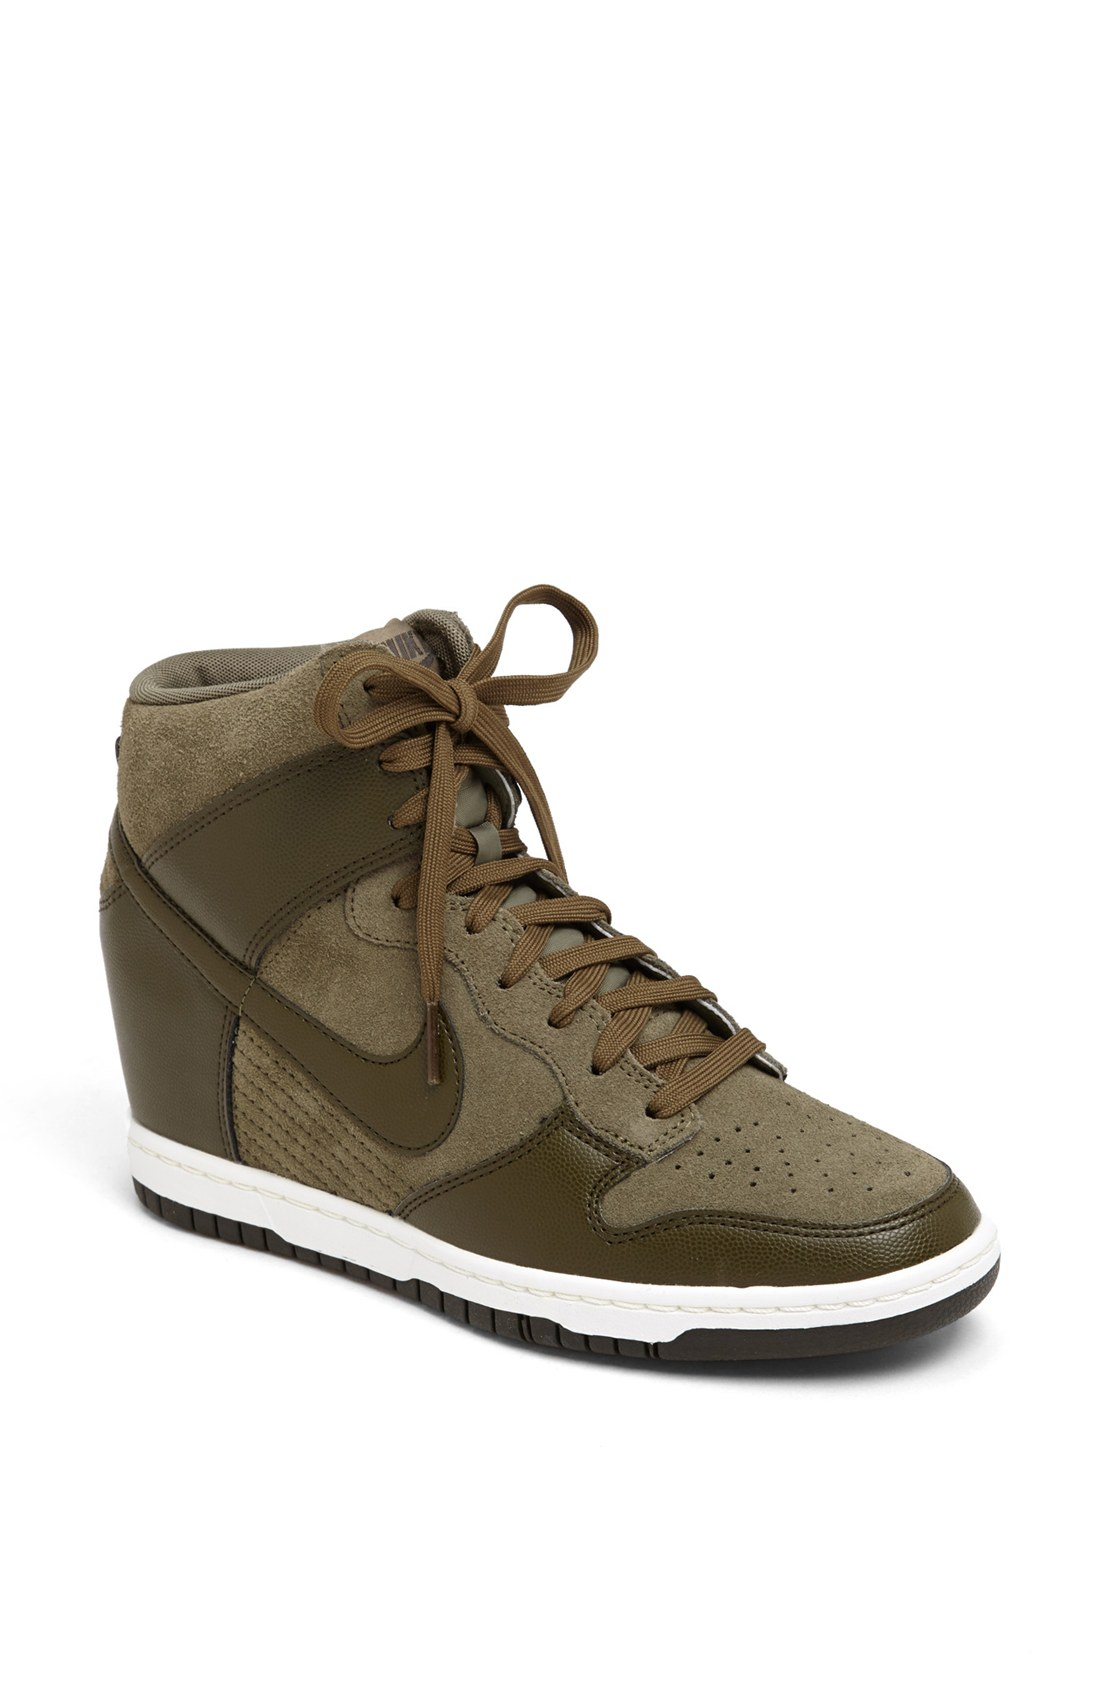 nike dunk sky hi wedge sneaker in gray dark loden dark loden. Black Bedroom Furniture Sets. Home Design Ideas